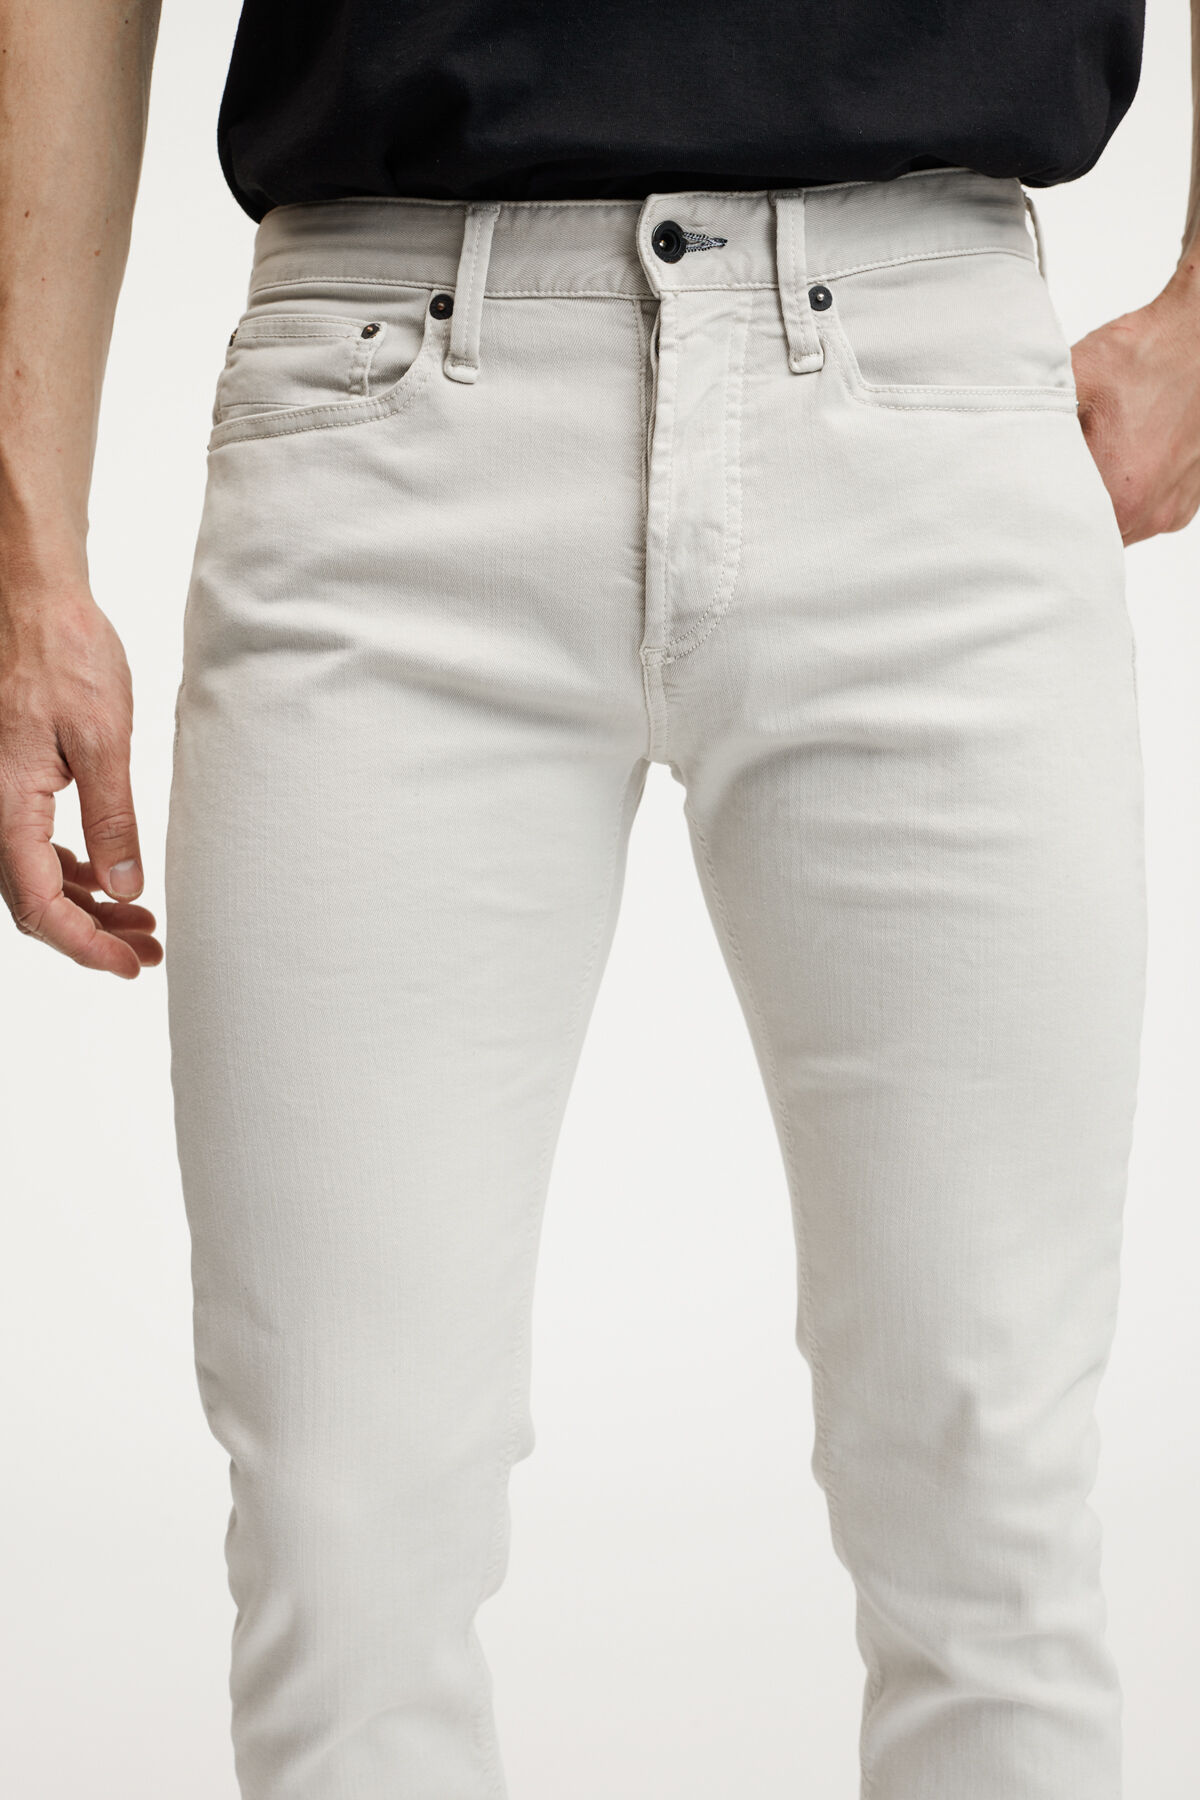 BOLT COTTON & TENCEL BLEND CHINO - SKINNY FIT